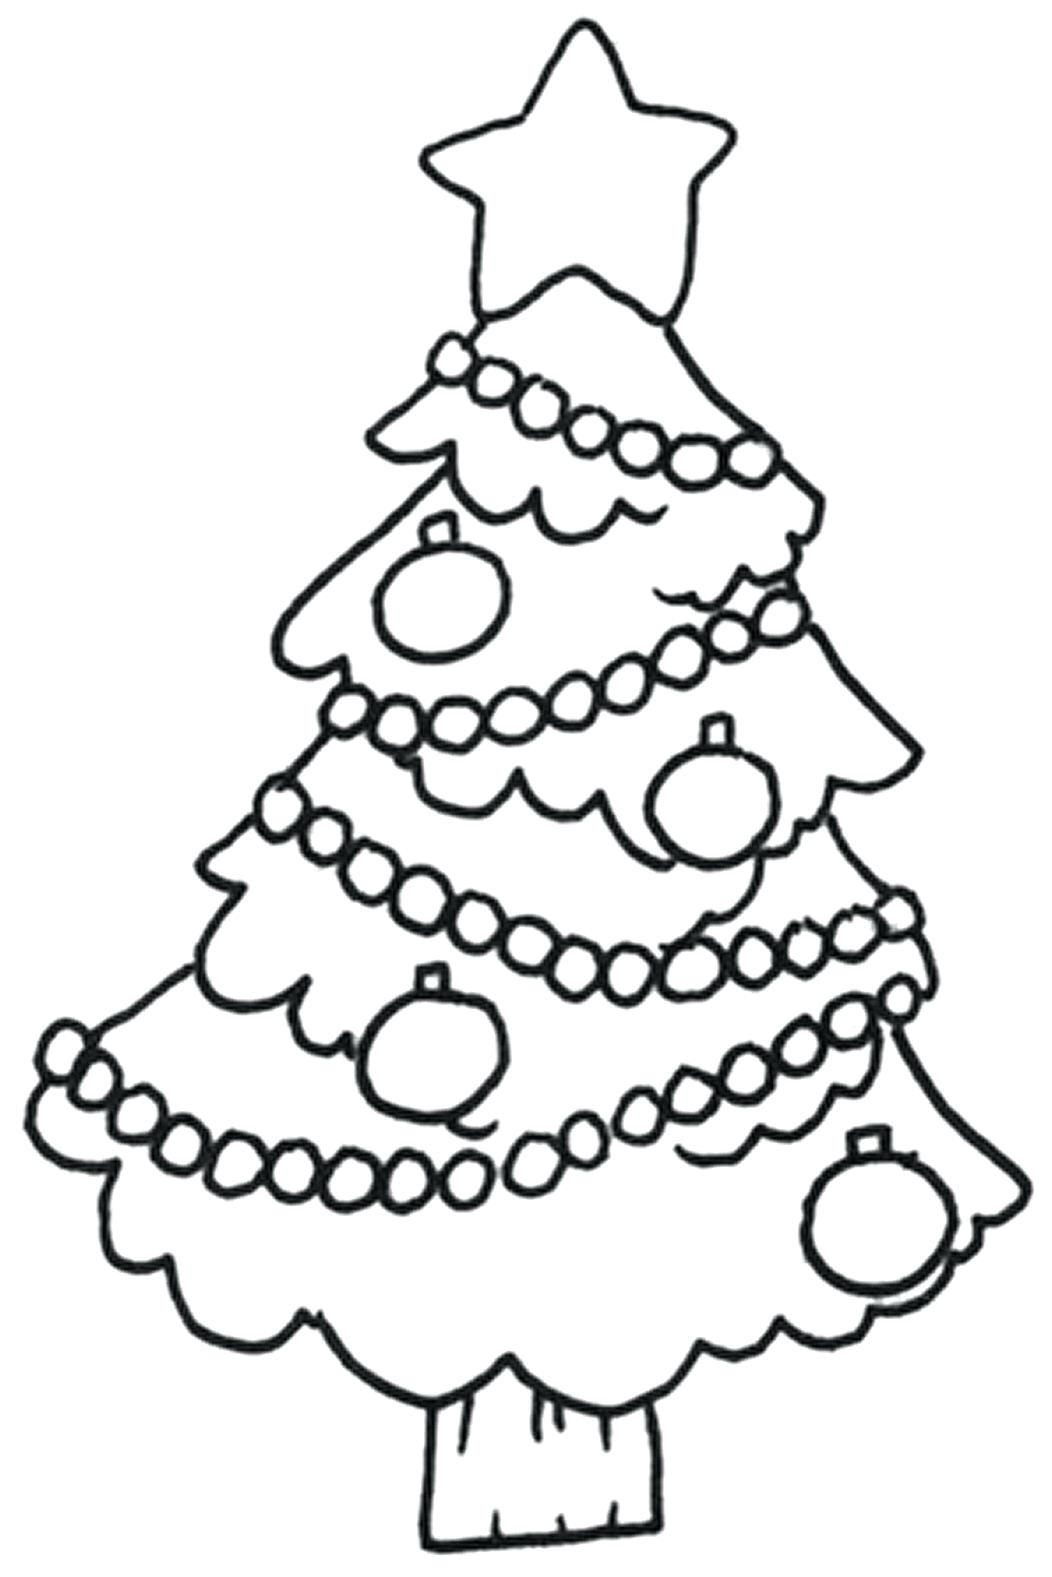 Printable Coloring Pages For Christmas Ornaments. Printable Coloring - Free Printable Christmas Tree Ornaments To Color